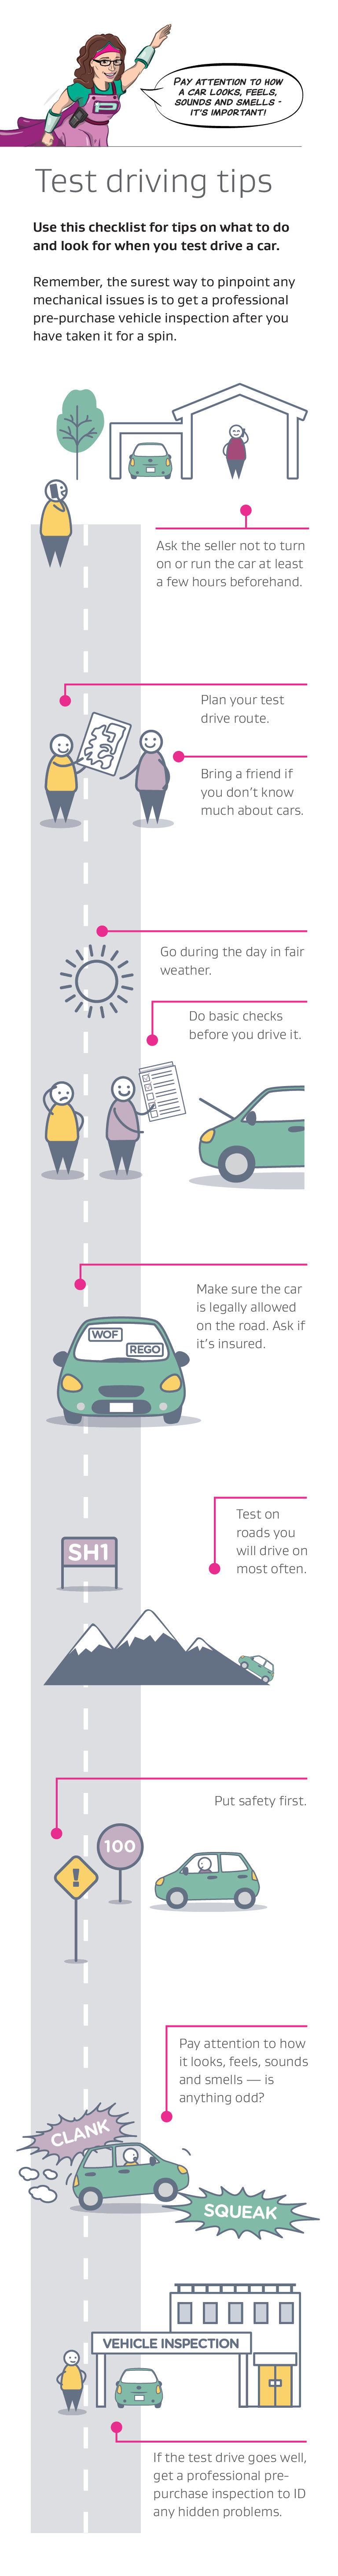 Visual guide: Test driving tips - mobile modal